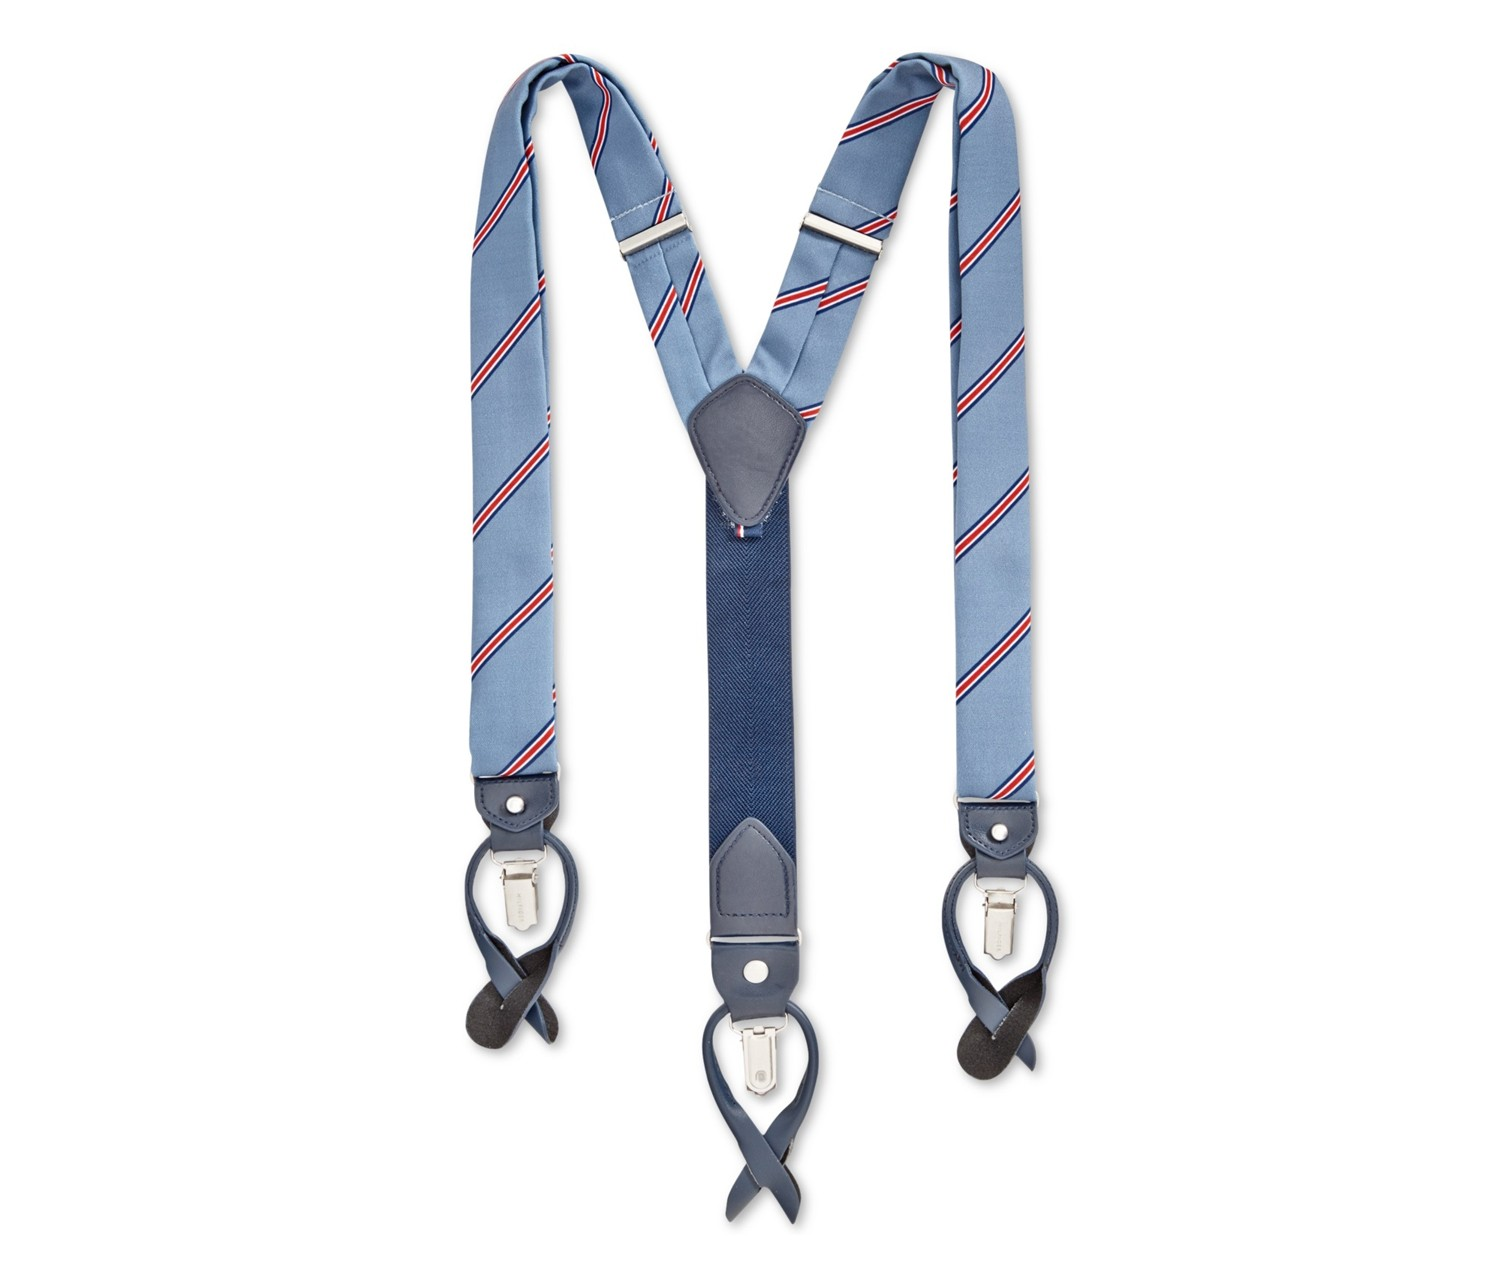 One Size Tommy Hilfiger Men/'s Khaki Solid Stretch Convertible Suspenders